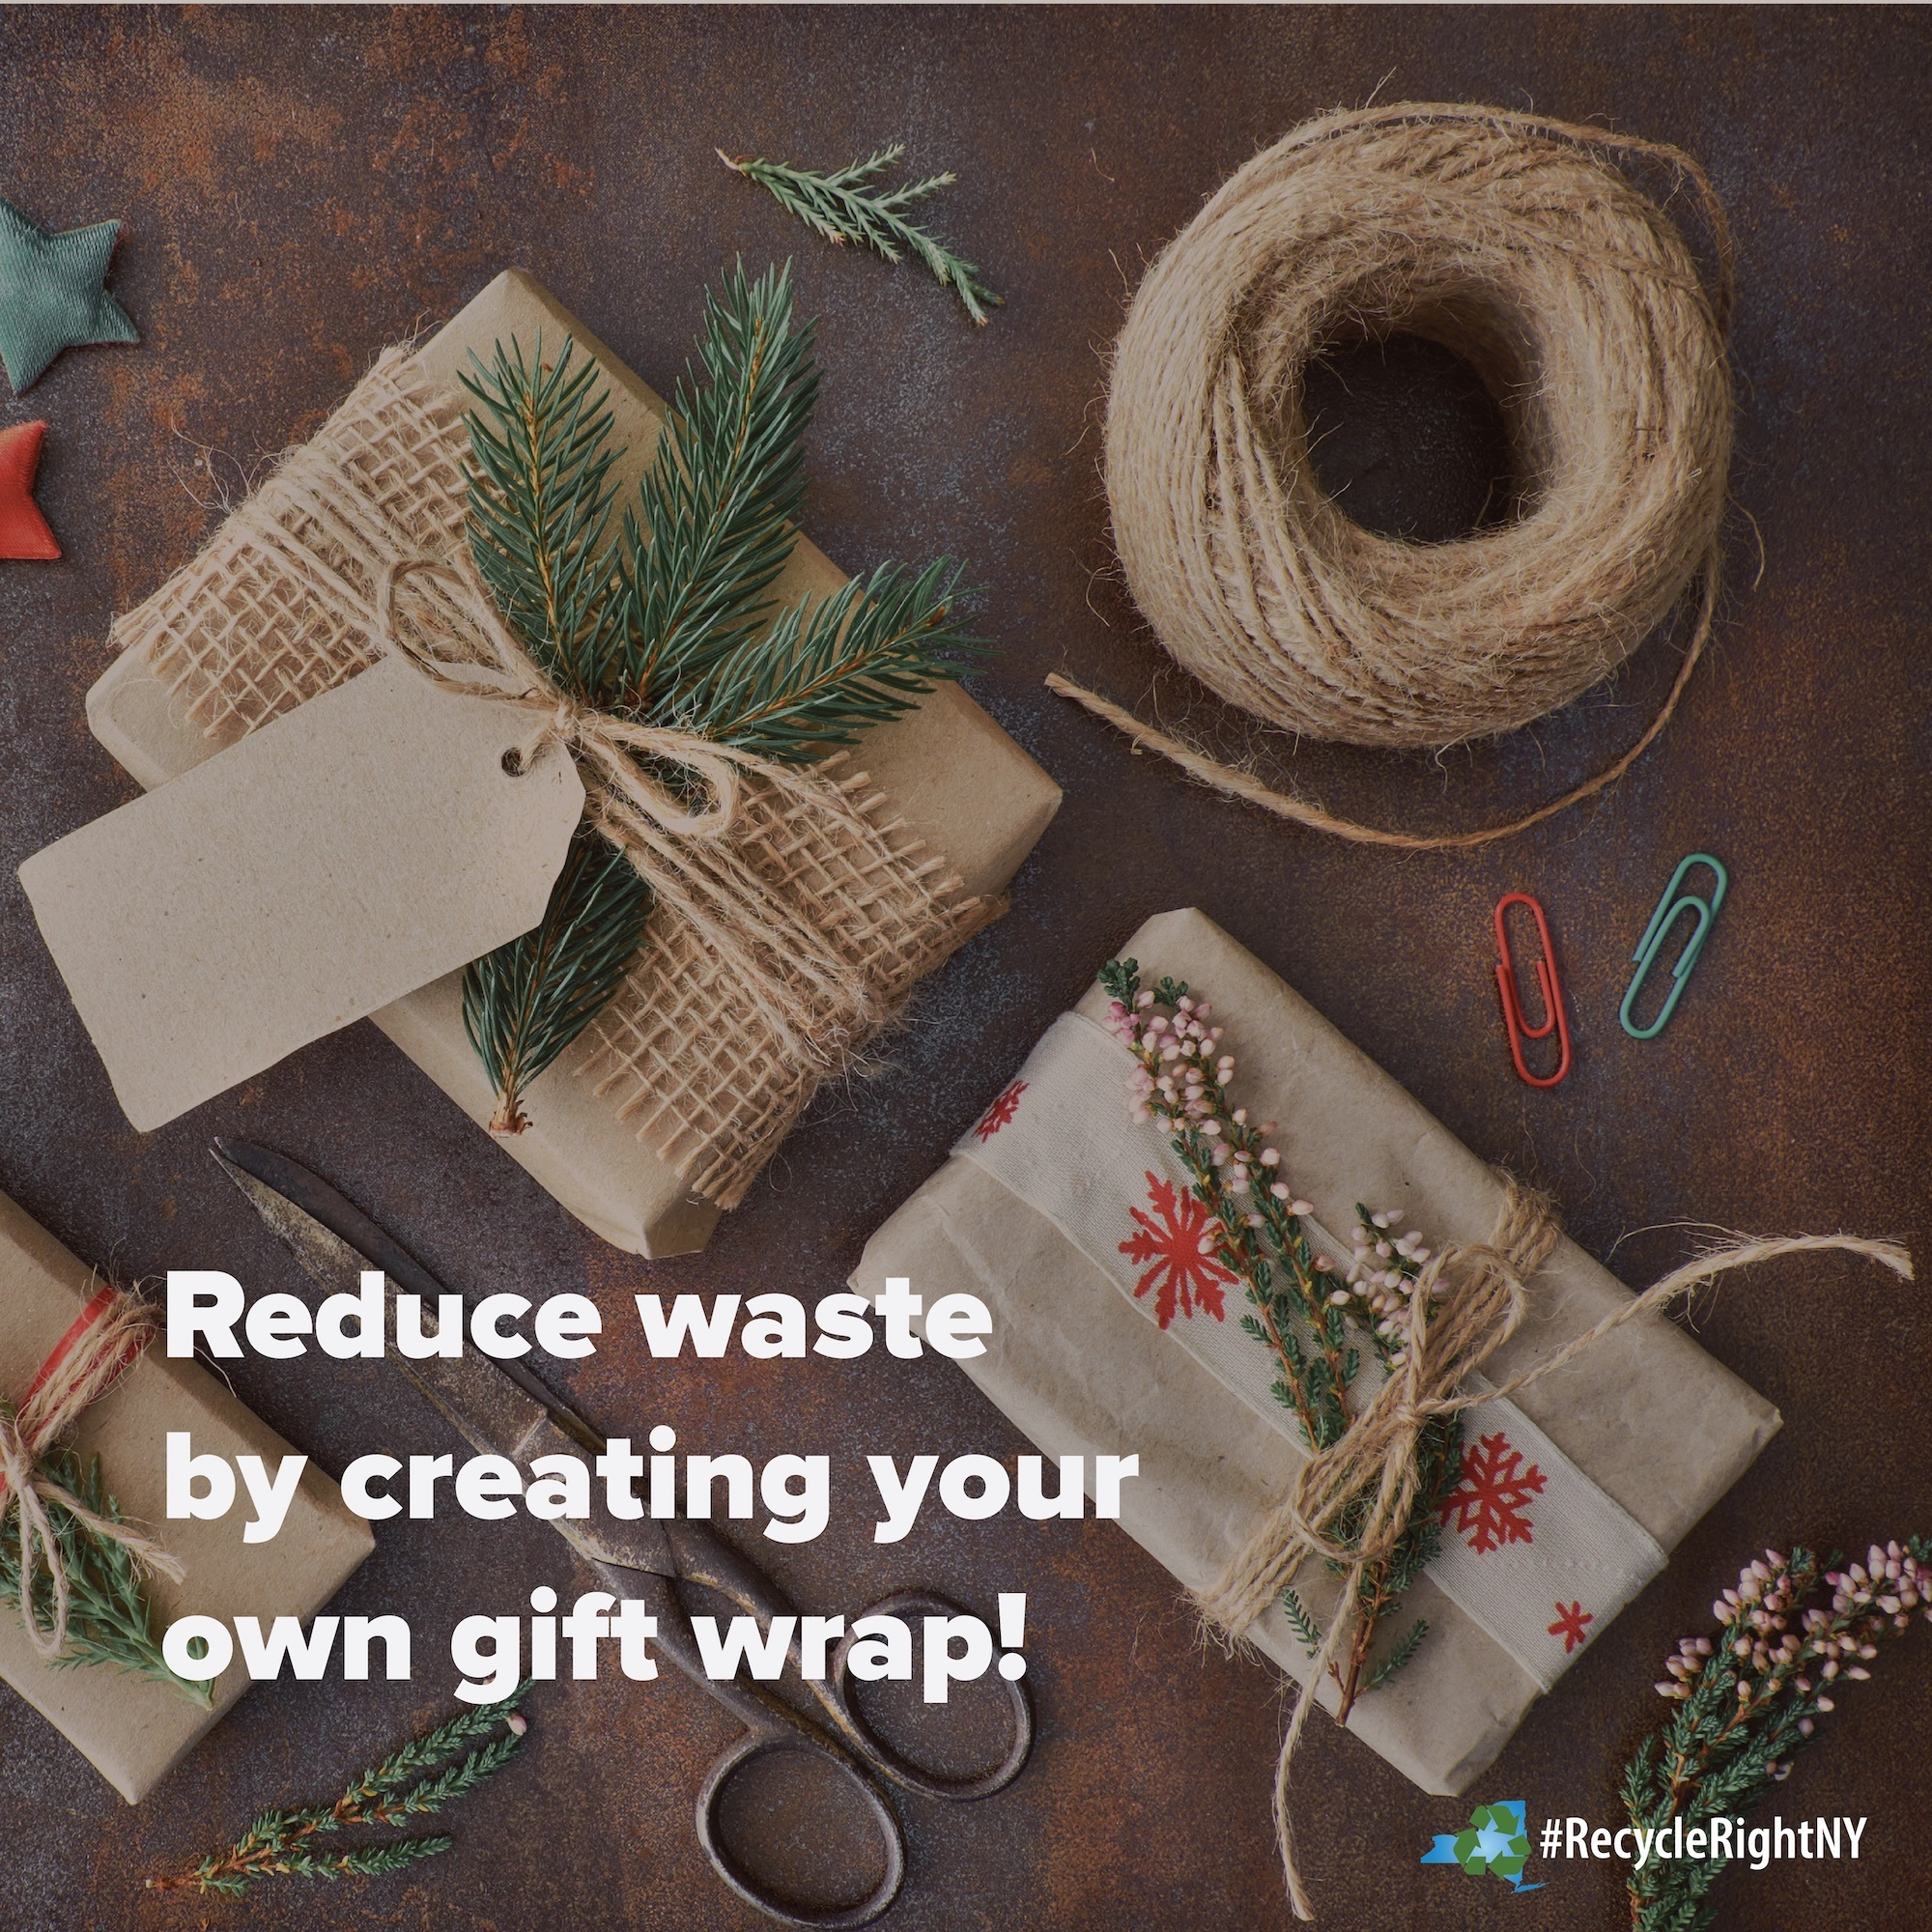 image depicting how to reduce waste by creating your own gift wrap from items you have available from items like paper bags and twine